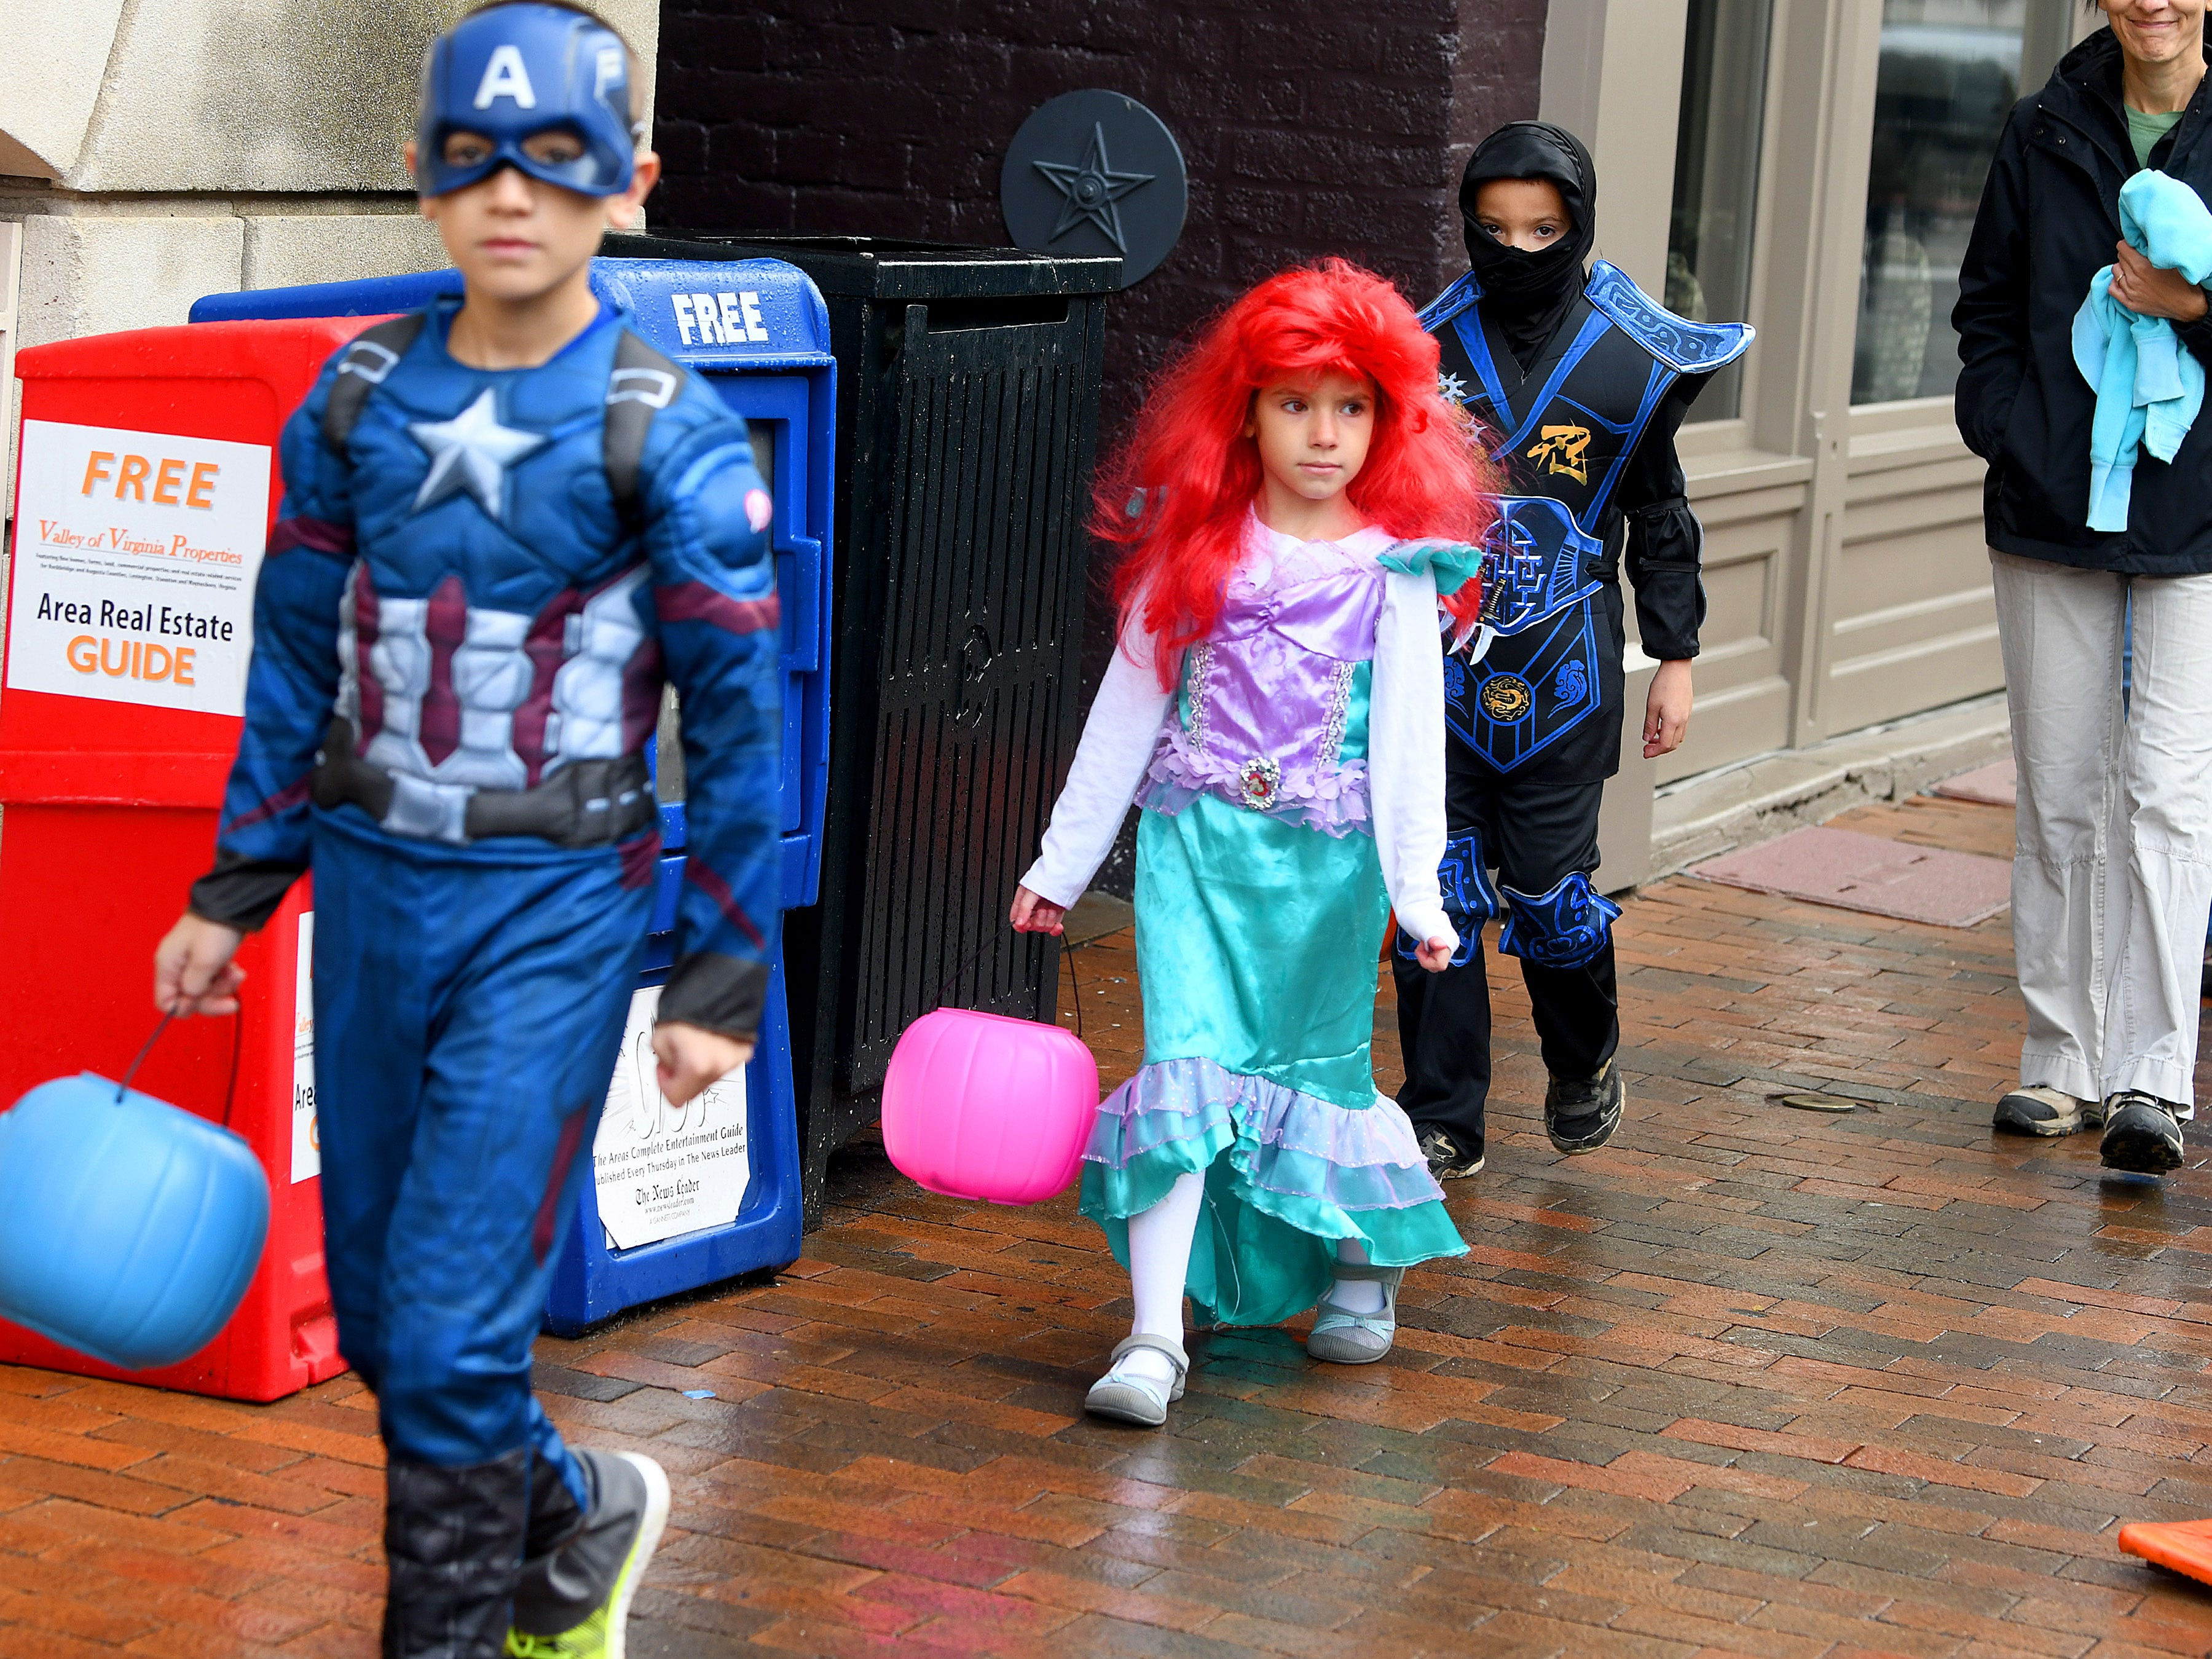 A Disney princess trick-or-treats in downtown Staunton on Saturday, Oct. 27, 2018.